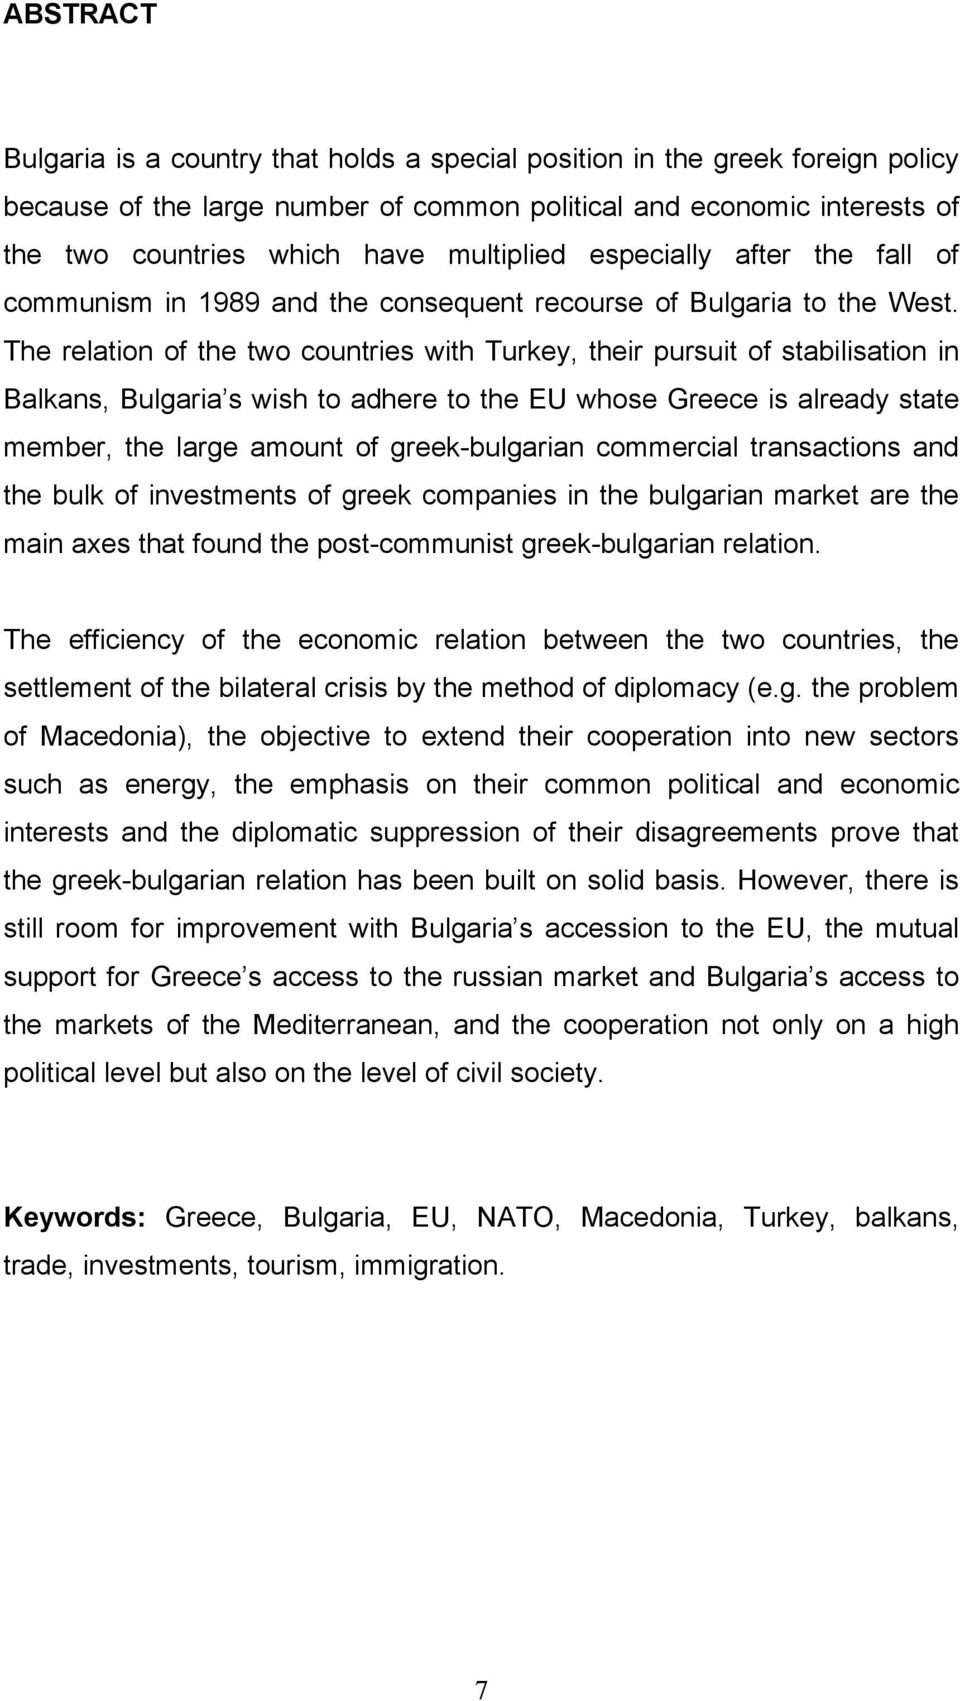 The relation of the two countries with Turkey, their pursuit of stabilisation in Balkans, Bulgaria s wish to adhere to the EU whose Greece is already state member, the large amount of greek-bulgarian